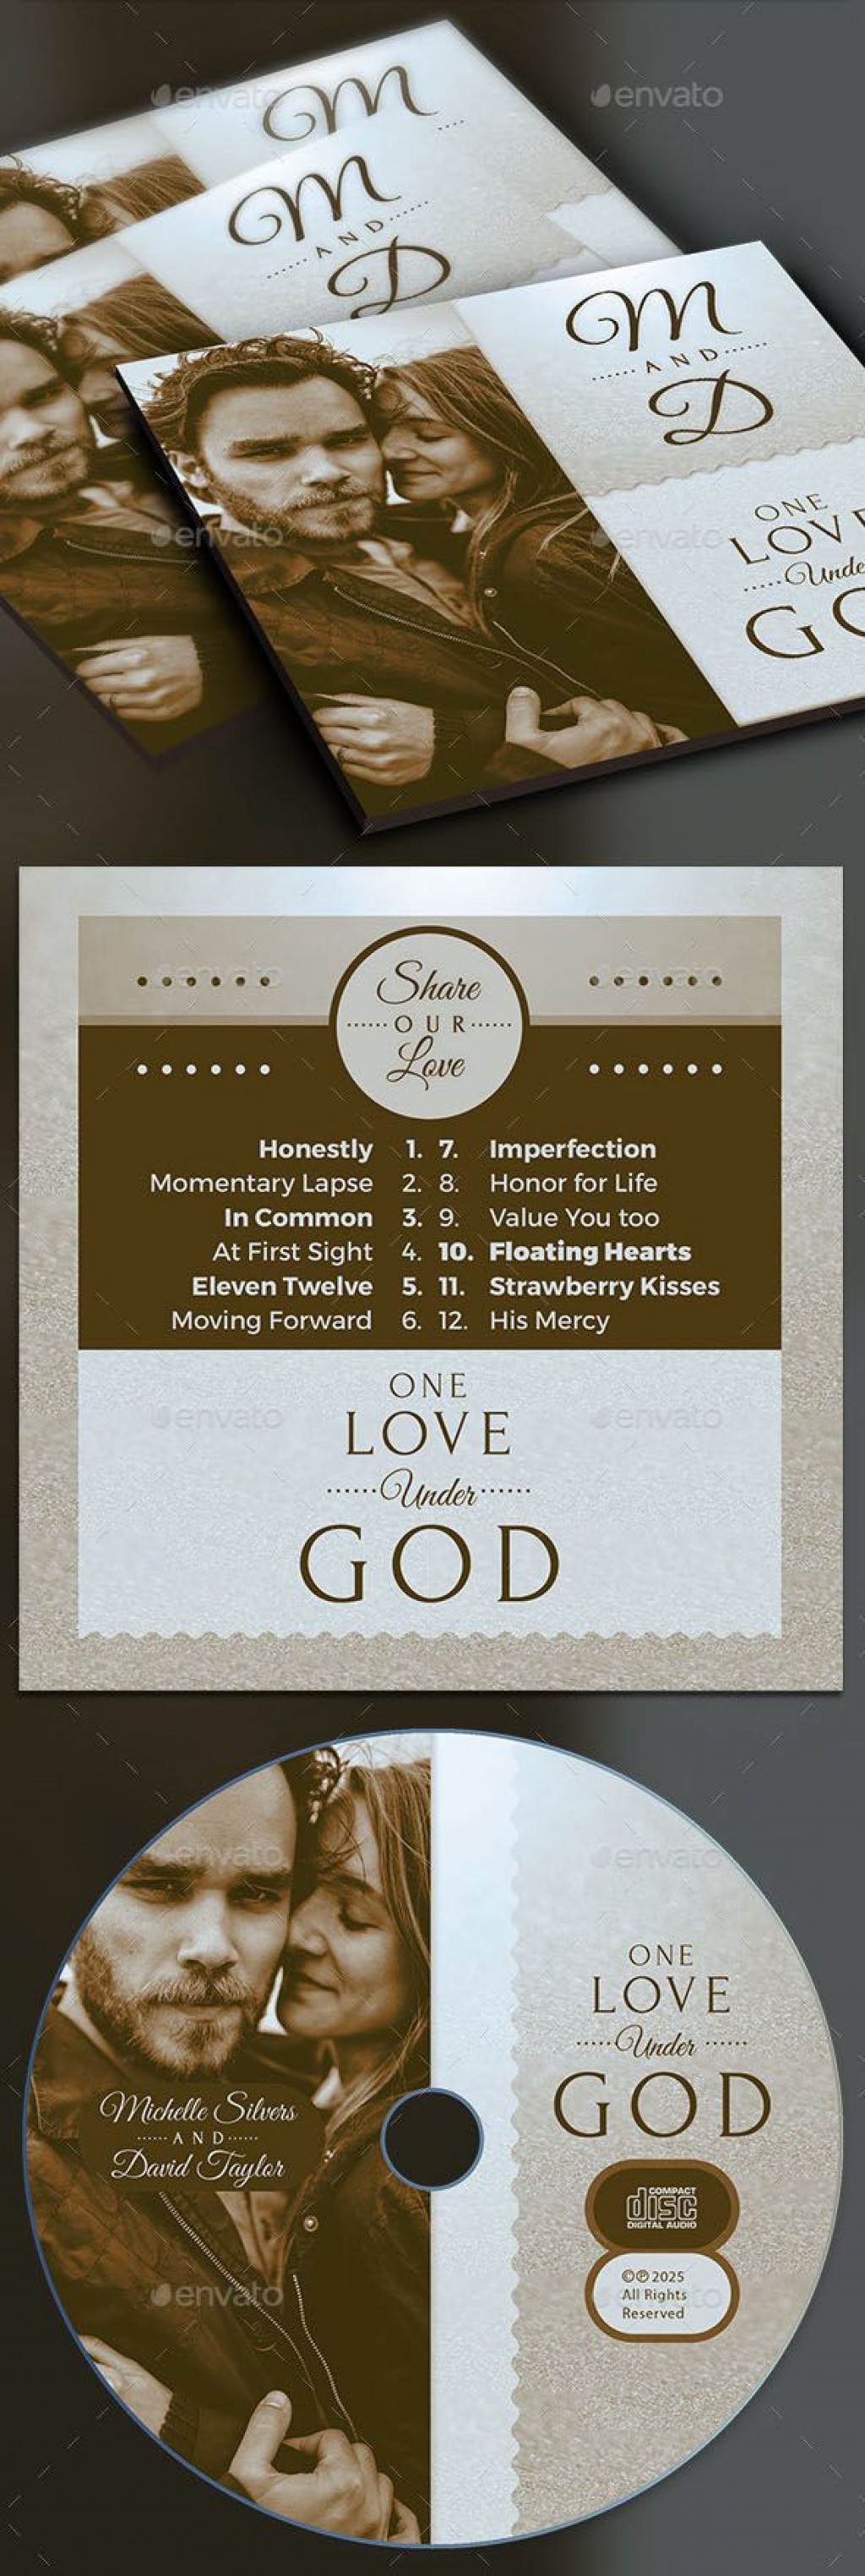 004 Beautiful Wedding Cd Cover Design Template Free Download Example Large